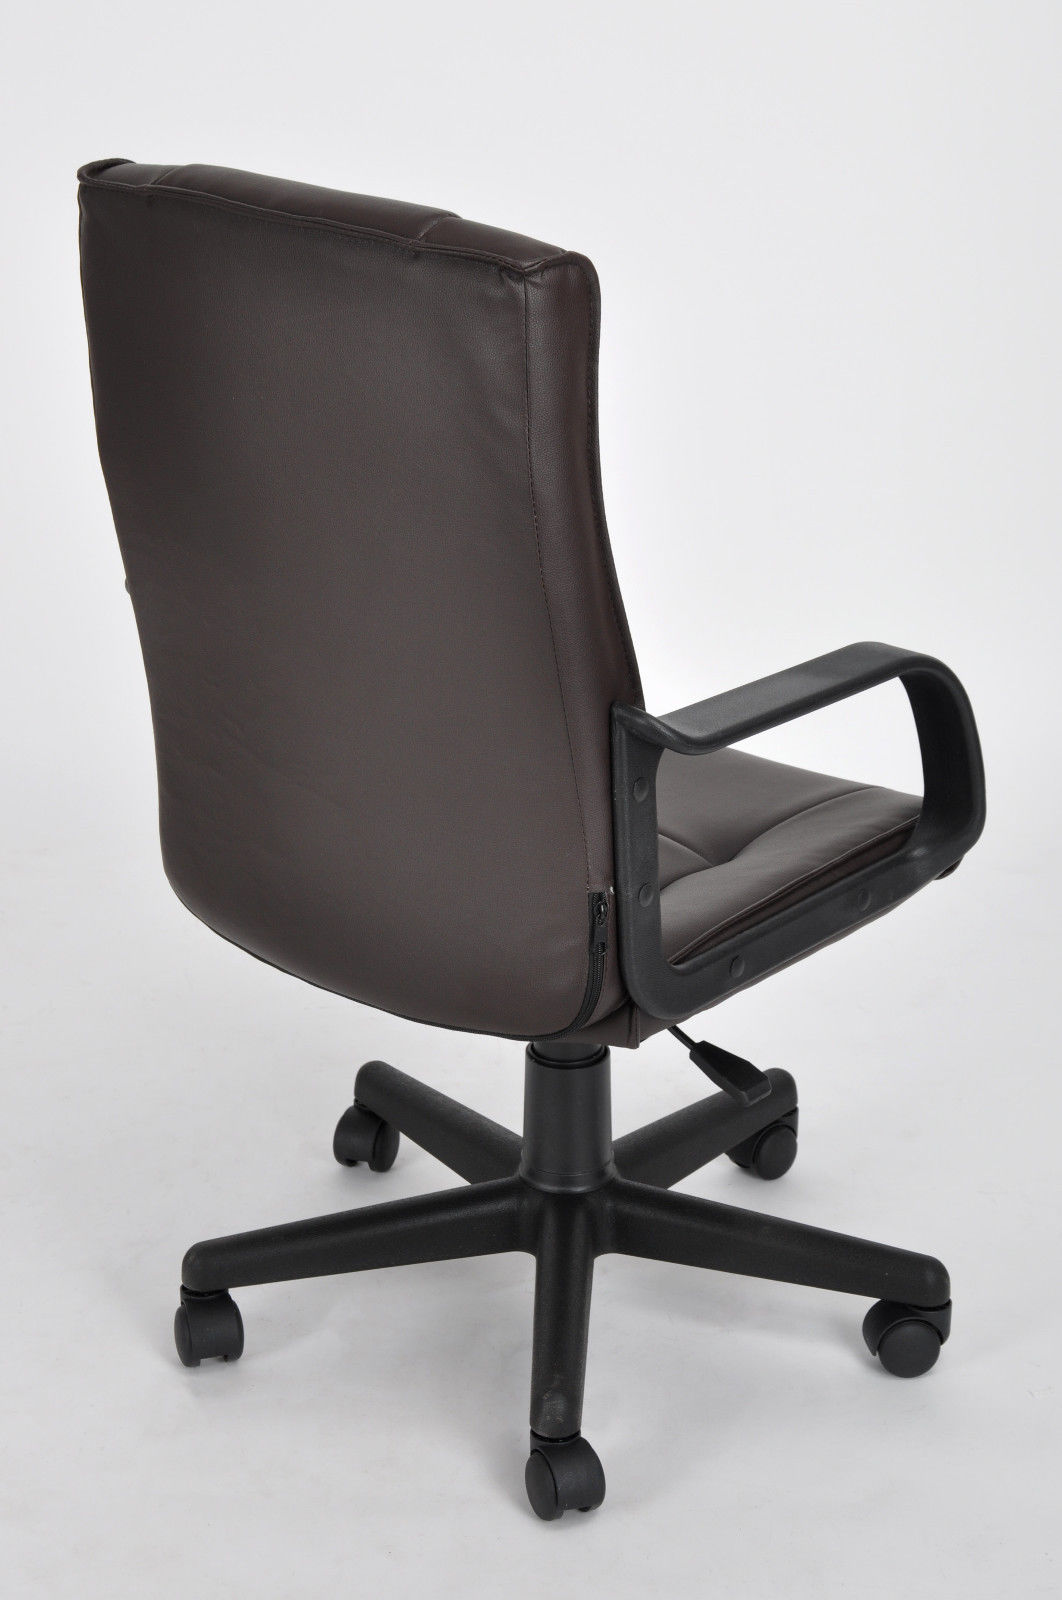 computer chair with arms zero gravity uk high back pu leather executive office desk task